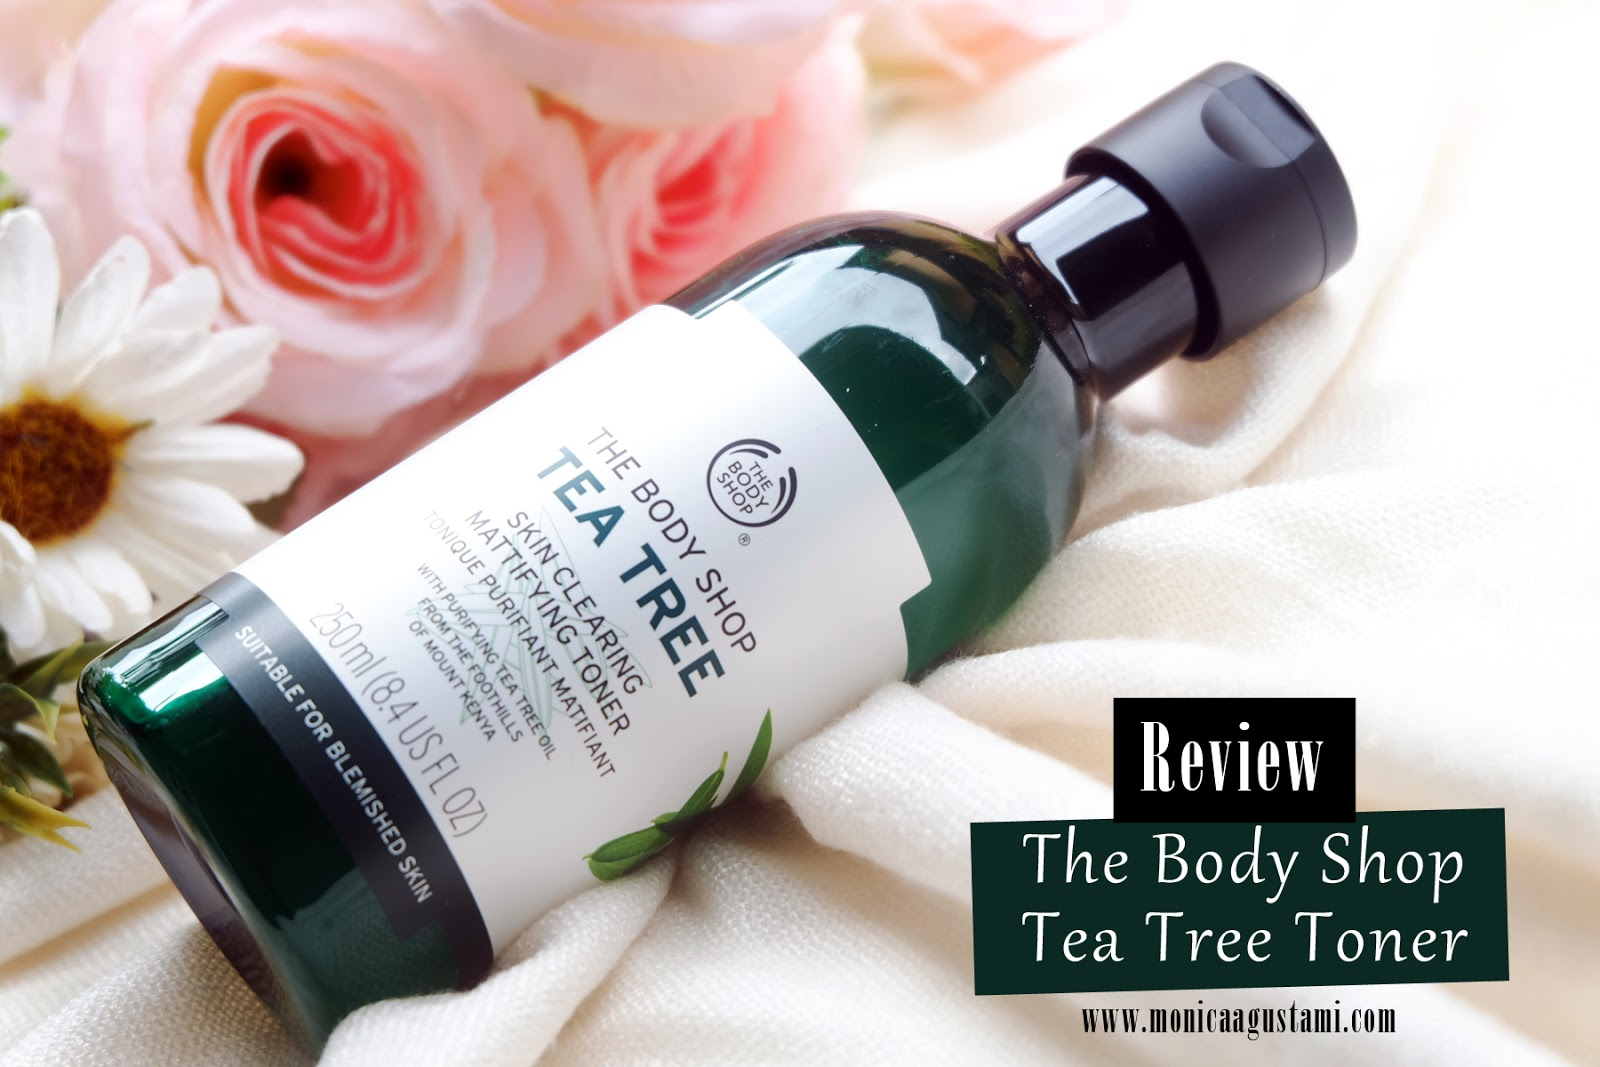 Review The Body Shop Tea Tree Toner Monica Agustami